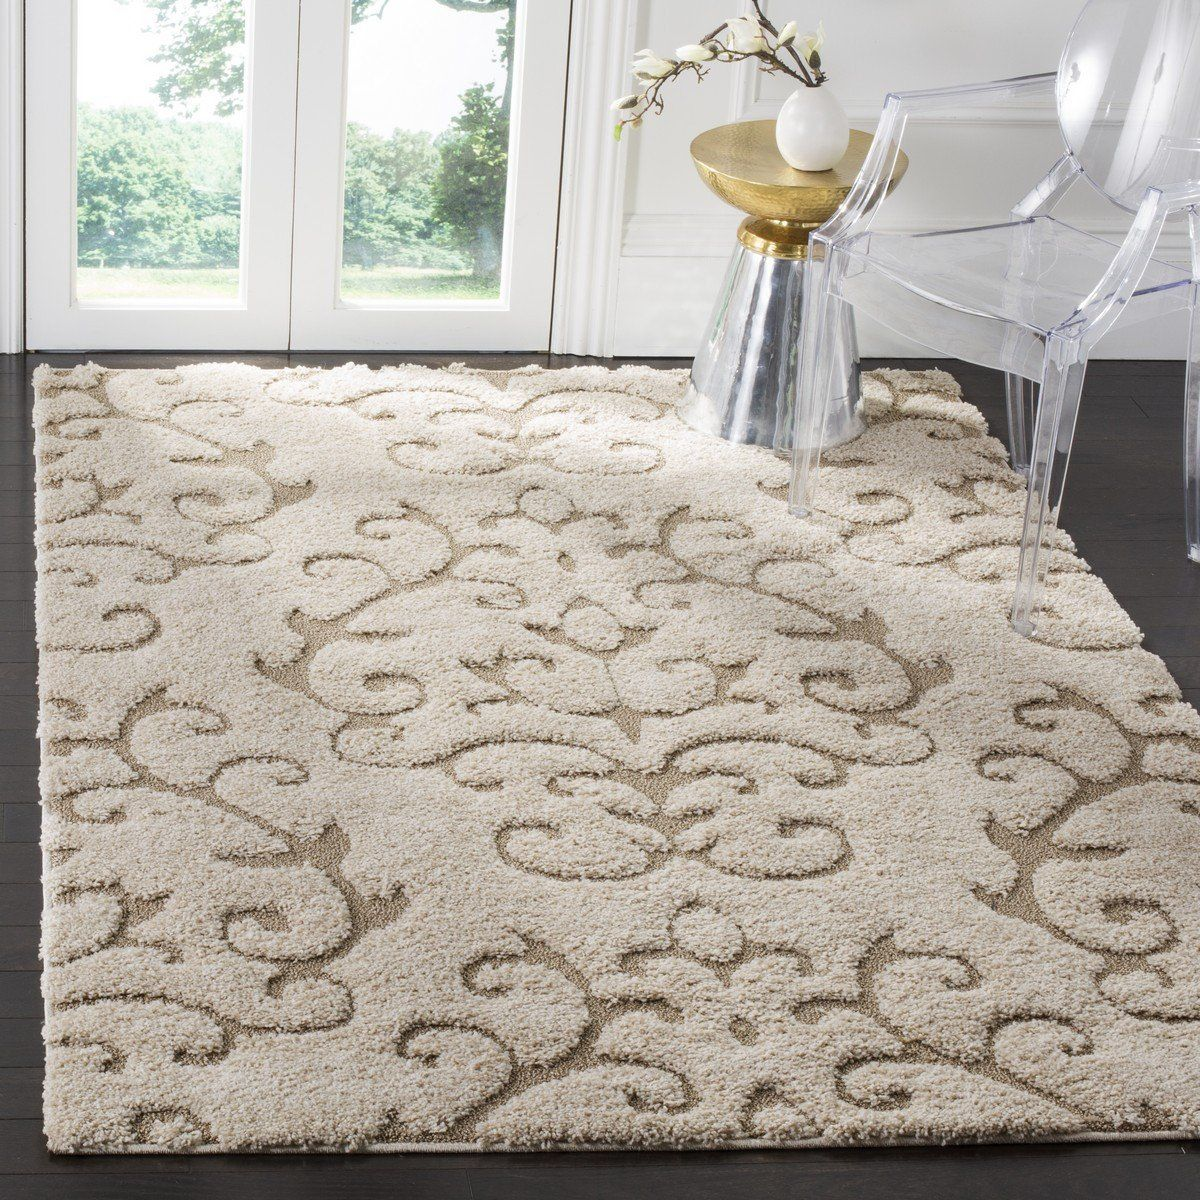 Safavieh Florida Shag Bertille Ogee Rug Cool Rugs Area Rugs